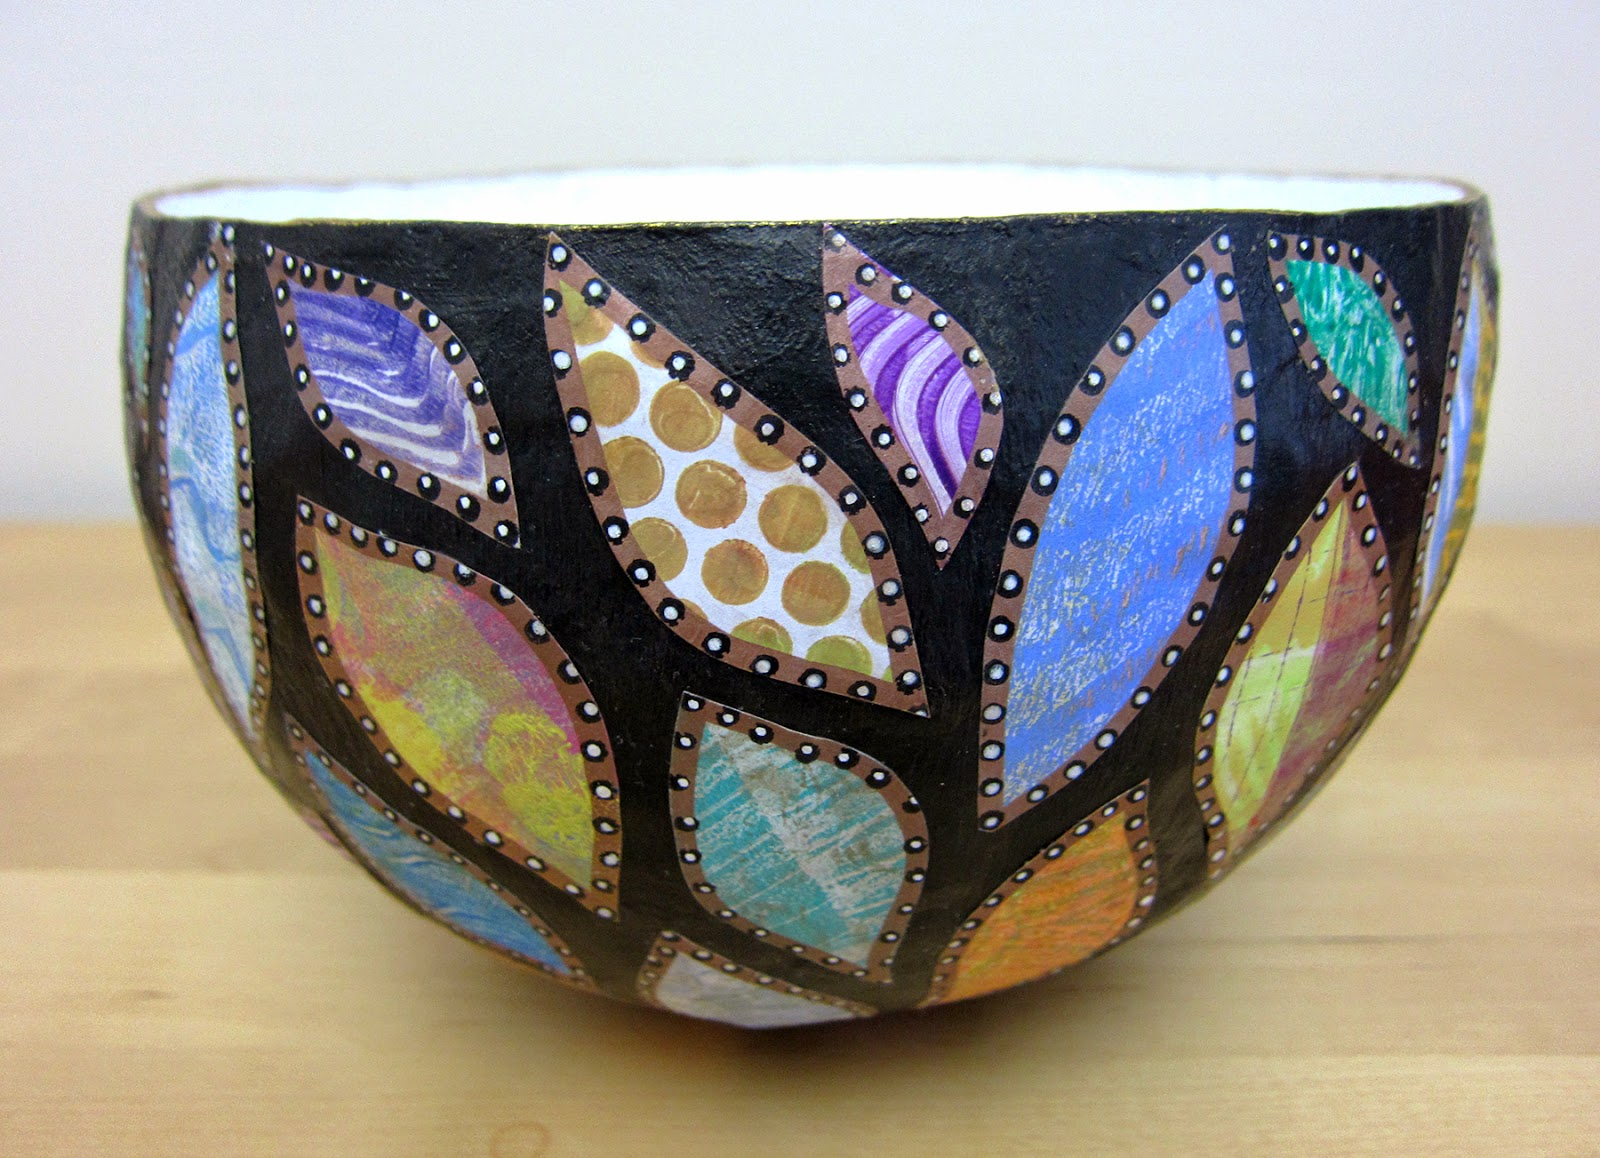 Paper Mache Decorating Printing With Gelli Artsr Paper Mache Bowls With Gelli Prints